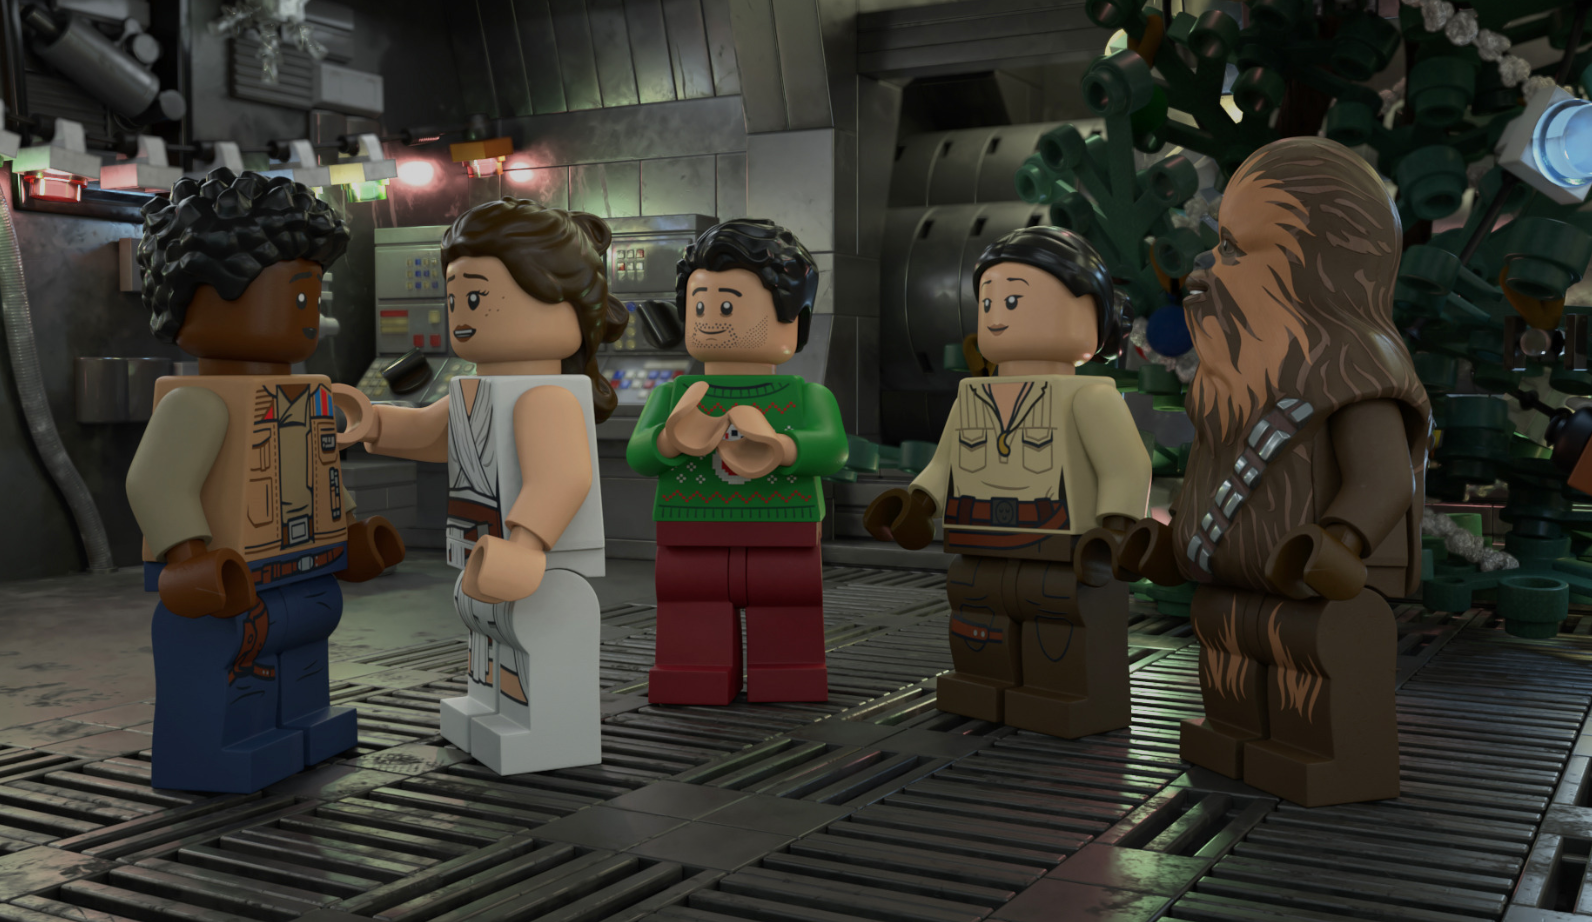 lego_star_wars_holiday_special_